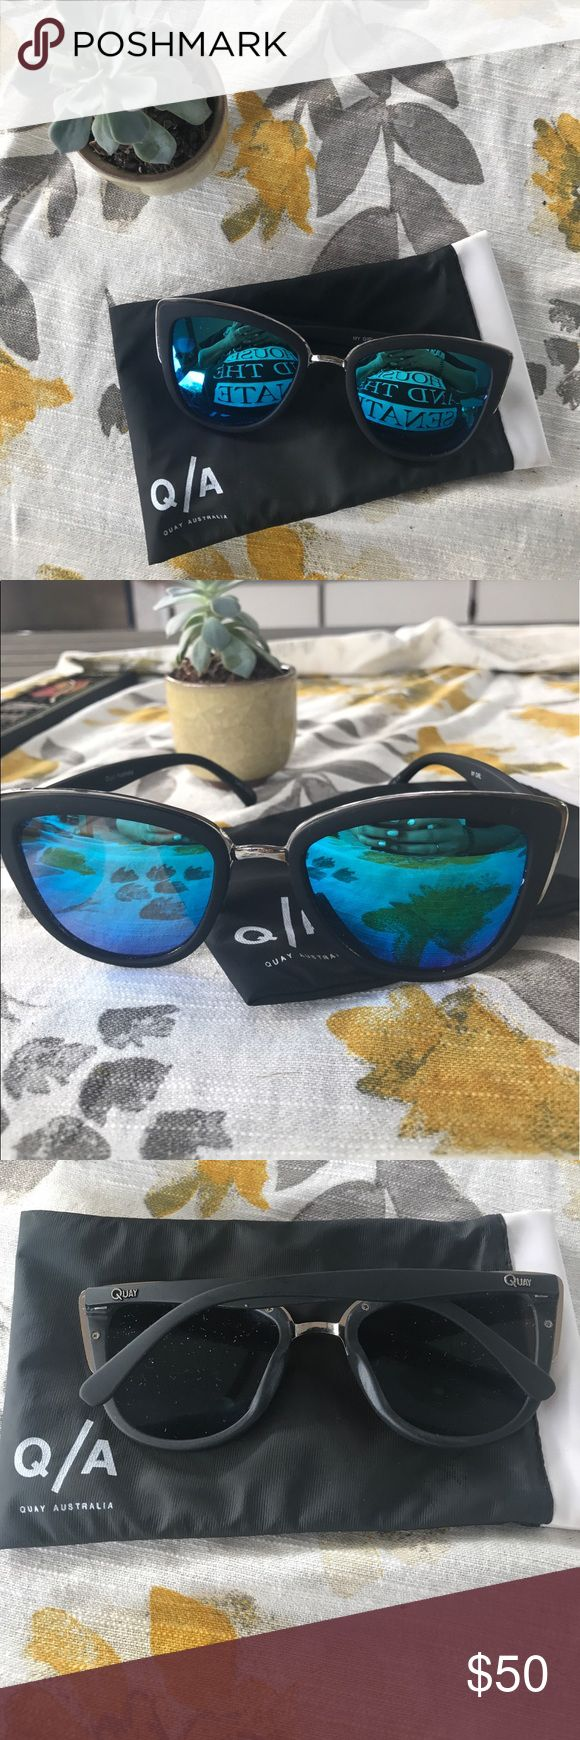 "Quay sunglasses Quay sunglasses in style ""my girl."" Oversized cat eye glasses in black color with blue reflective shade Quay Australia Accessories Sunglasses"